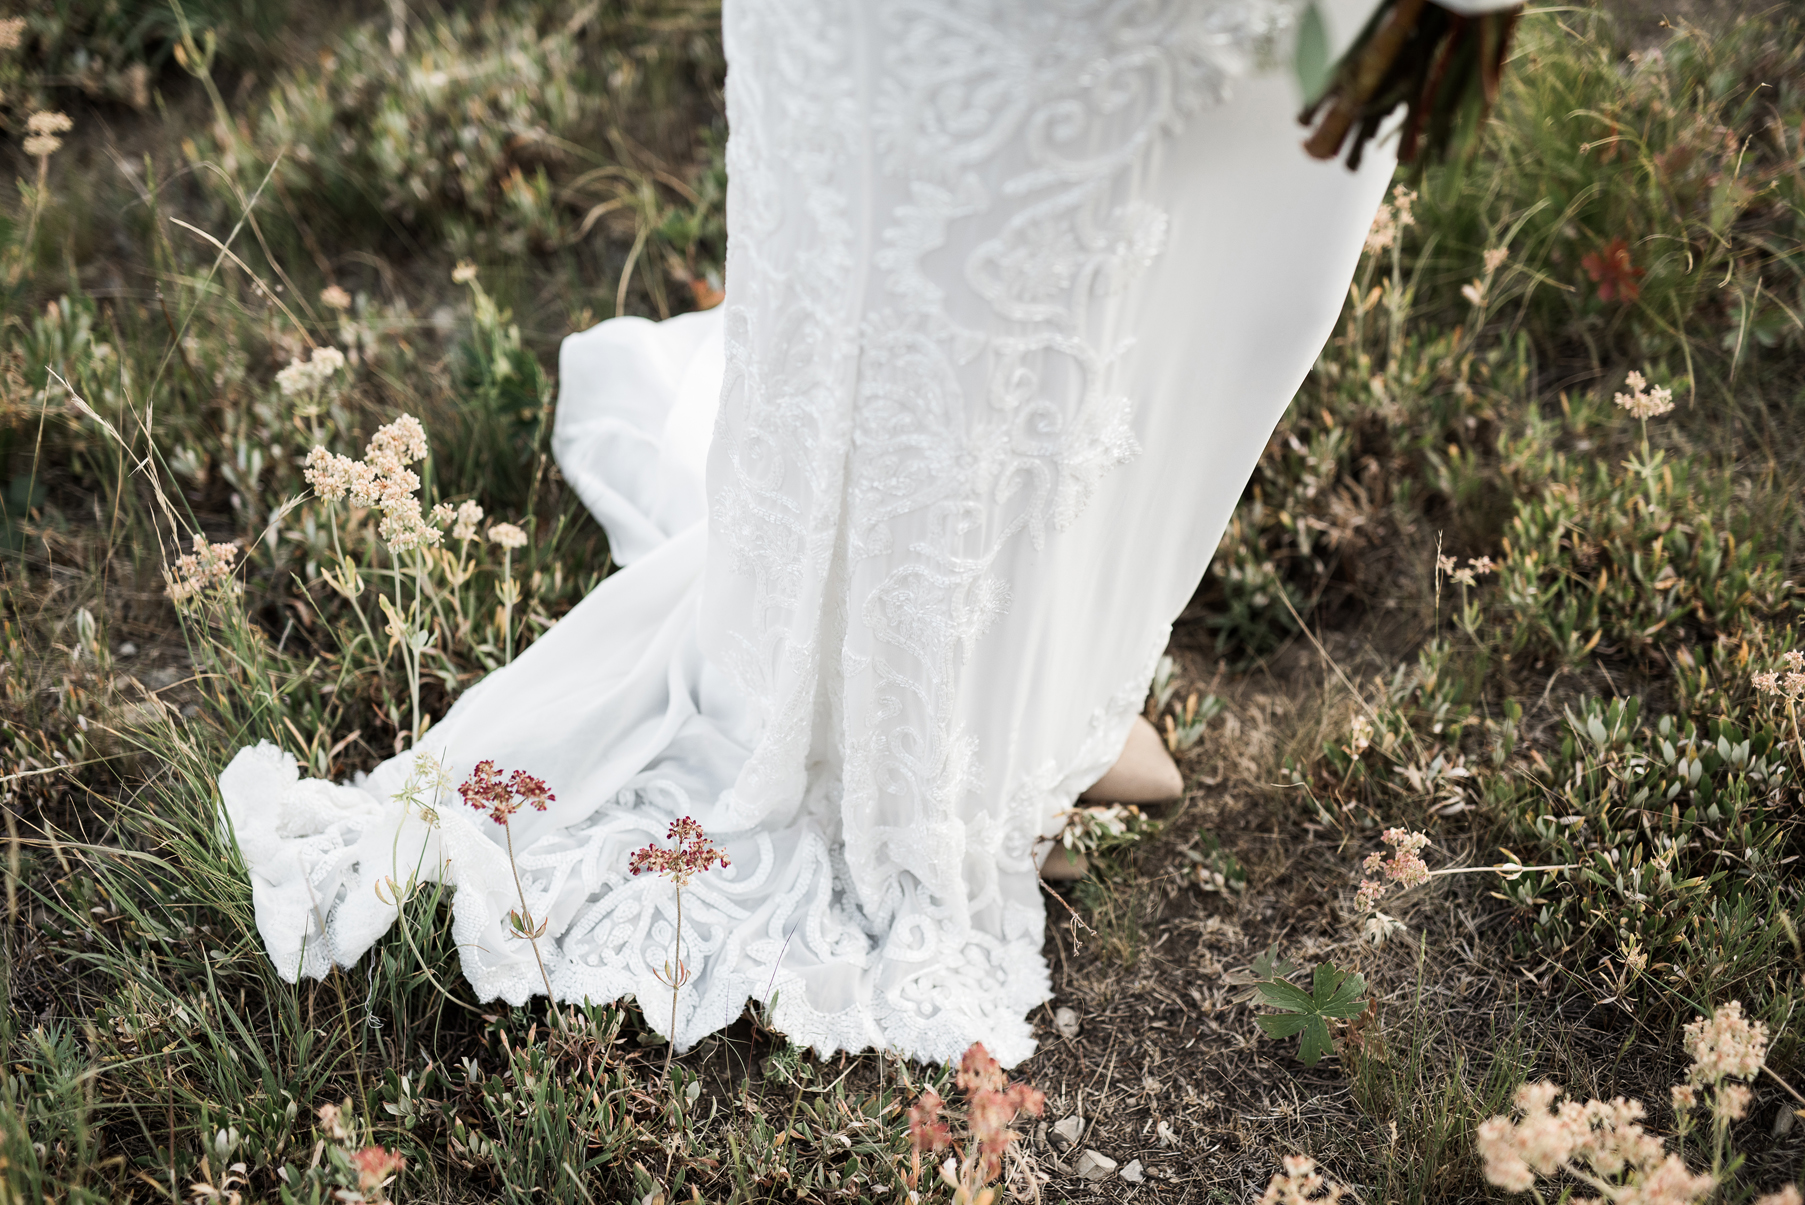 intricately beaded wedding gown in mountains